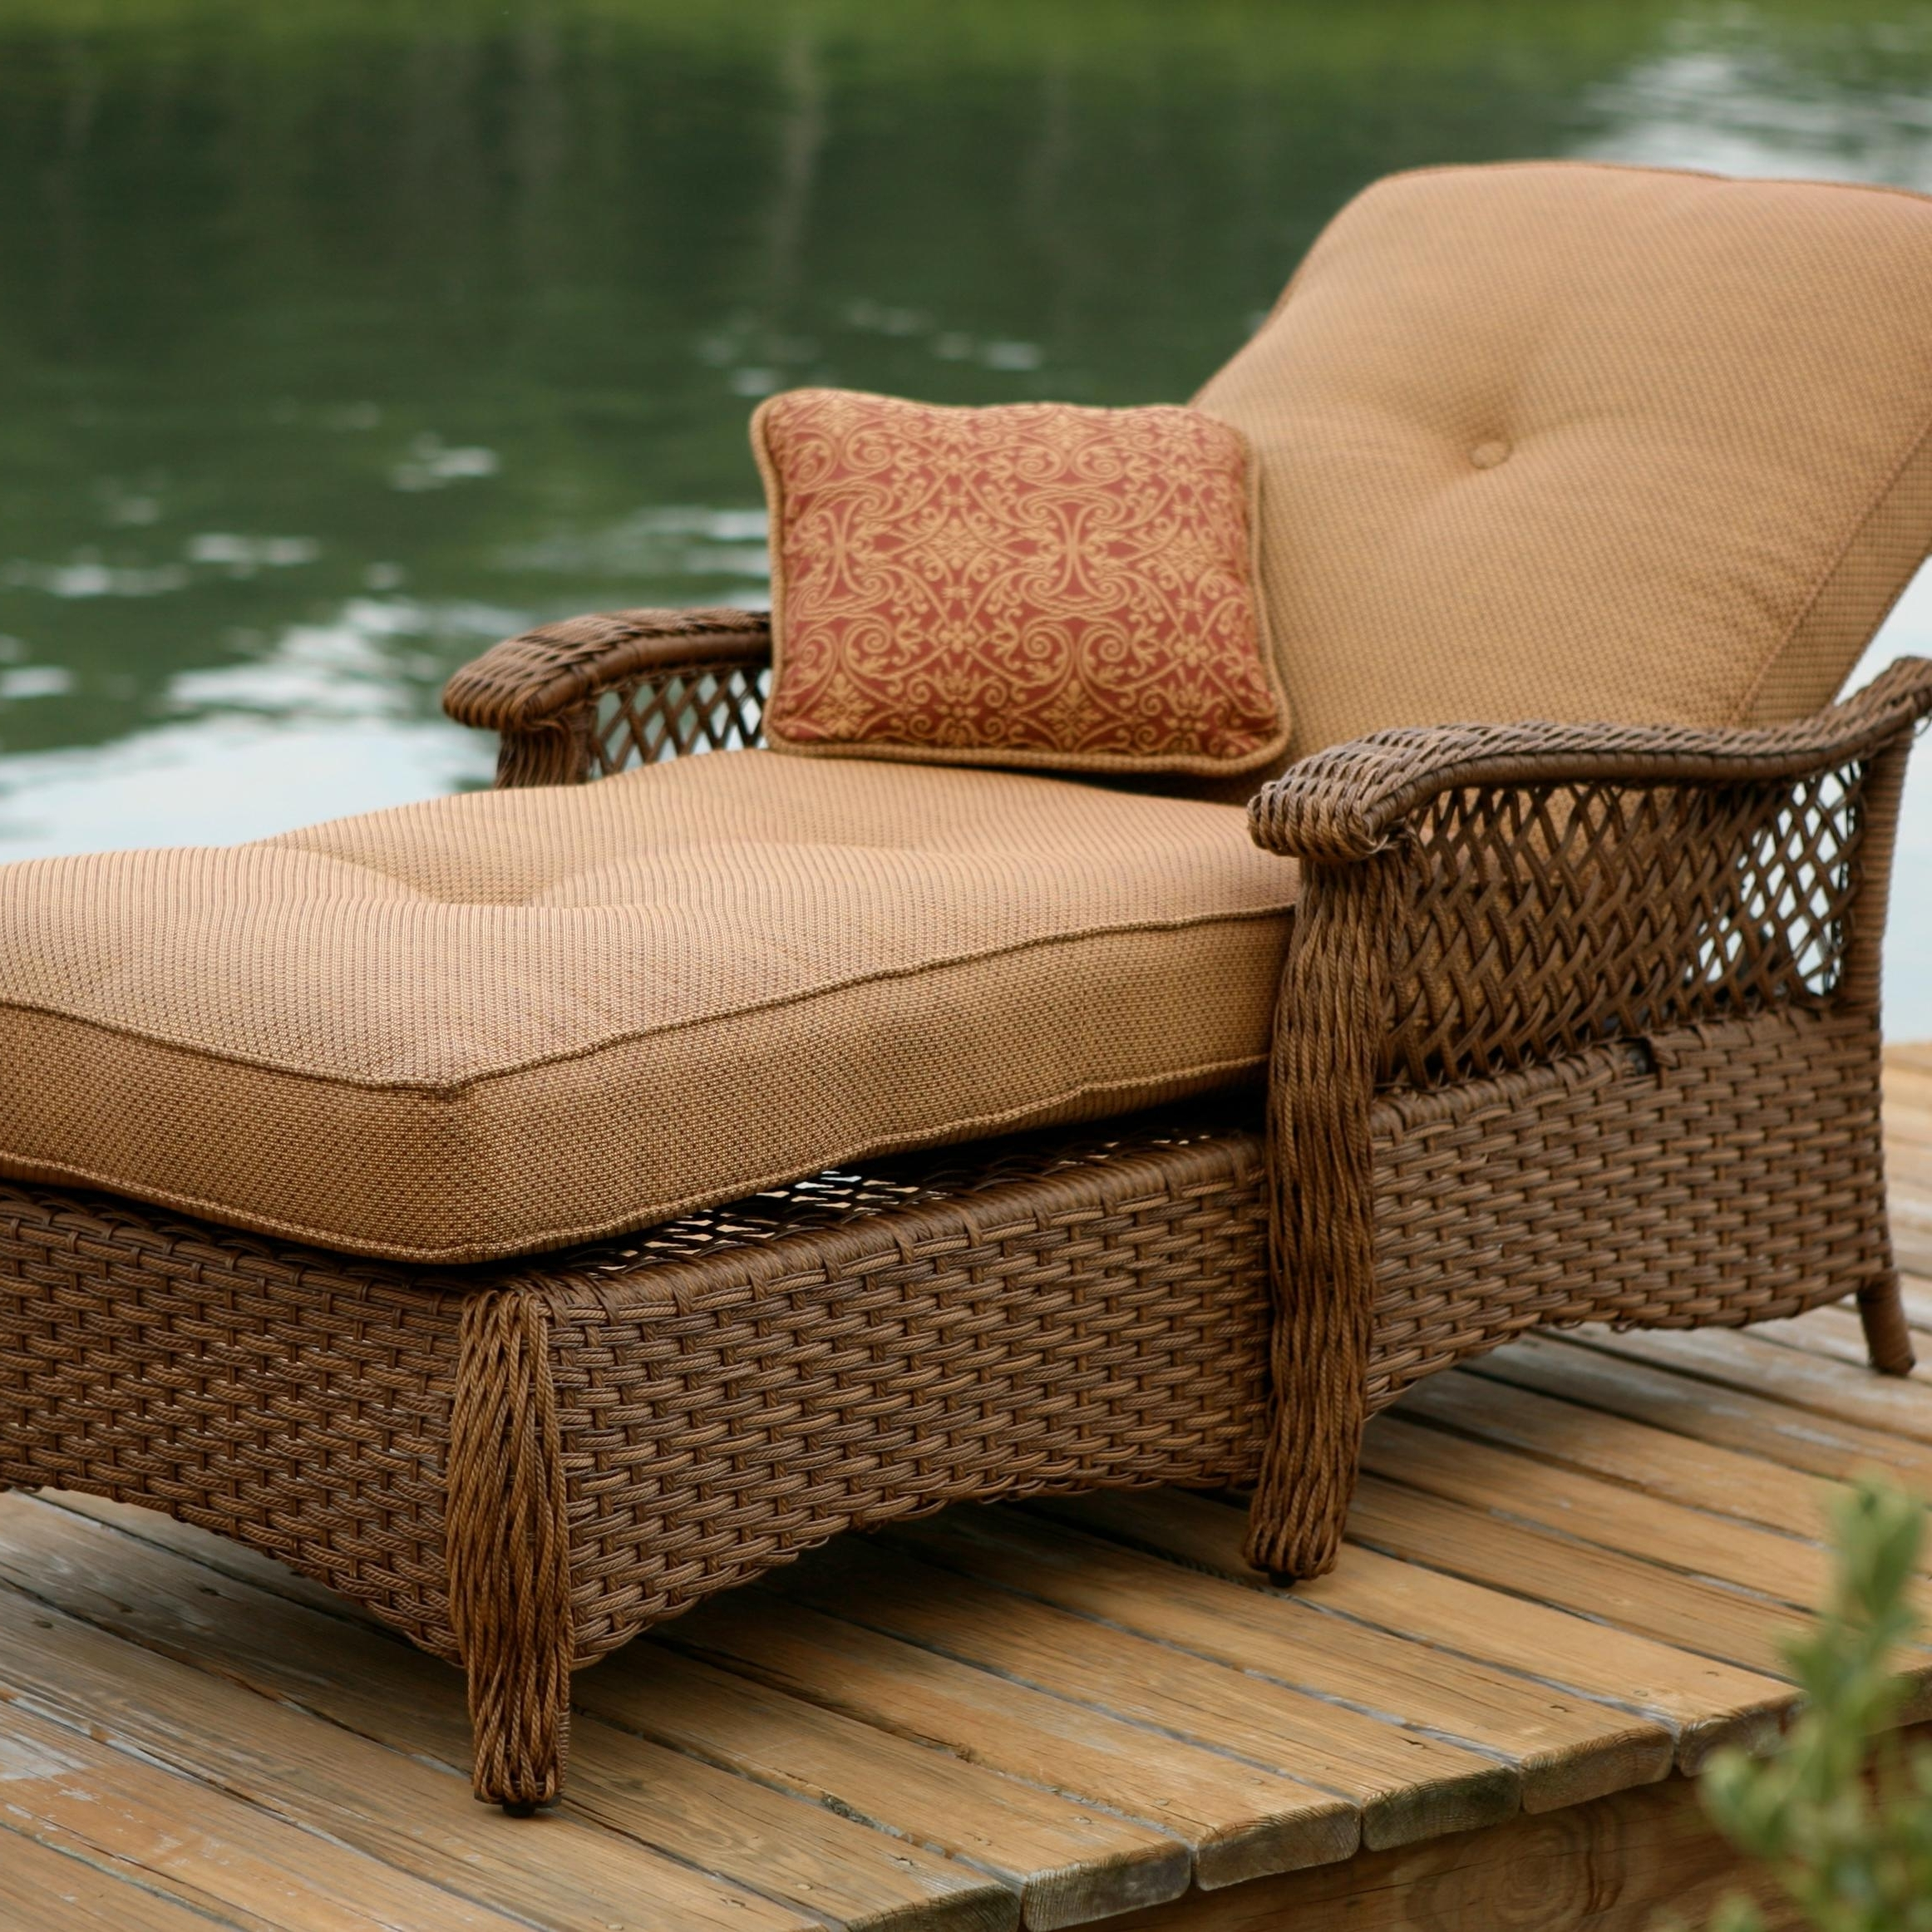 Chaise Lounge Chairs Made In Usa Regarding Famous Chaise Lounge Patio Chair Veranda Agio Outdoor Woven (View 3 of 15)